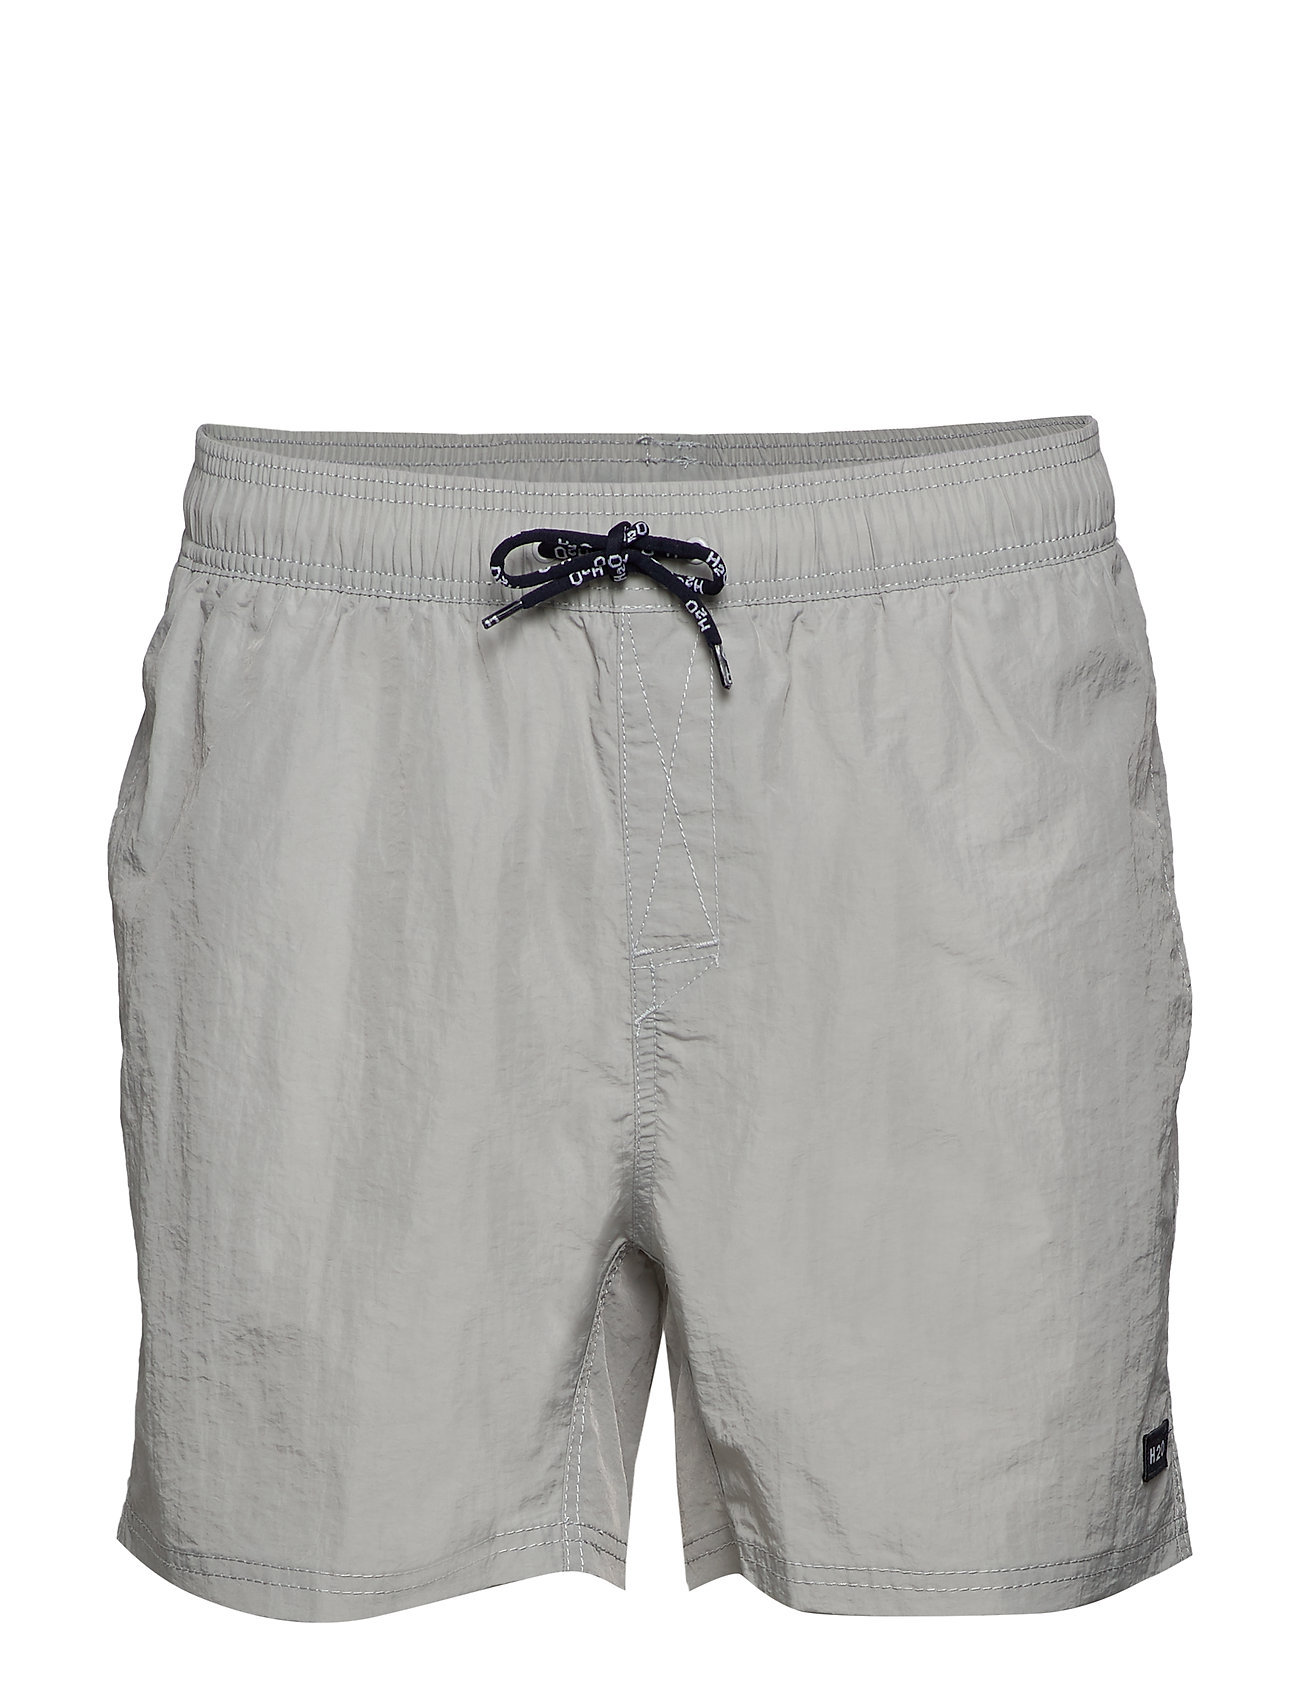 Image of Leisure Swim Shorts Badeshorts Grå H2O (3406319729)